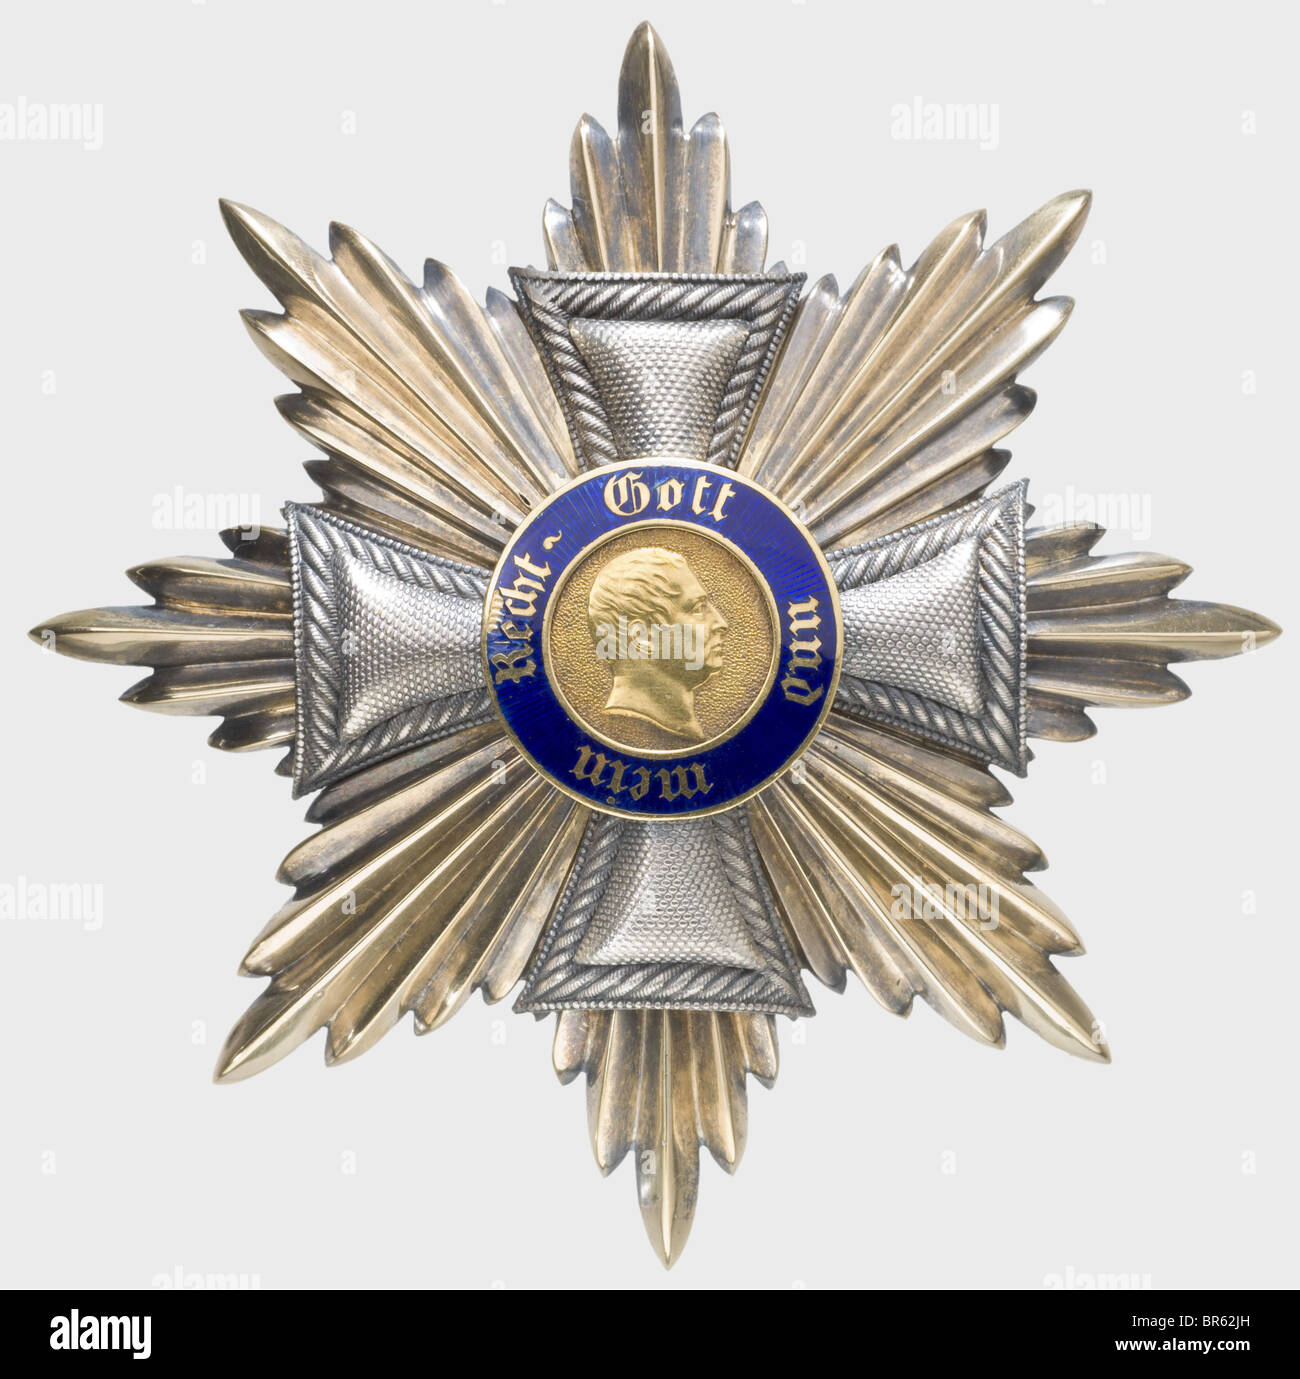 Order of frederick a star to the grand cross silver with gilt order of frederick a star to the grand cross silver with gilt areas gold medallion enamelled small chip flat waisted att buycottarizona